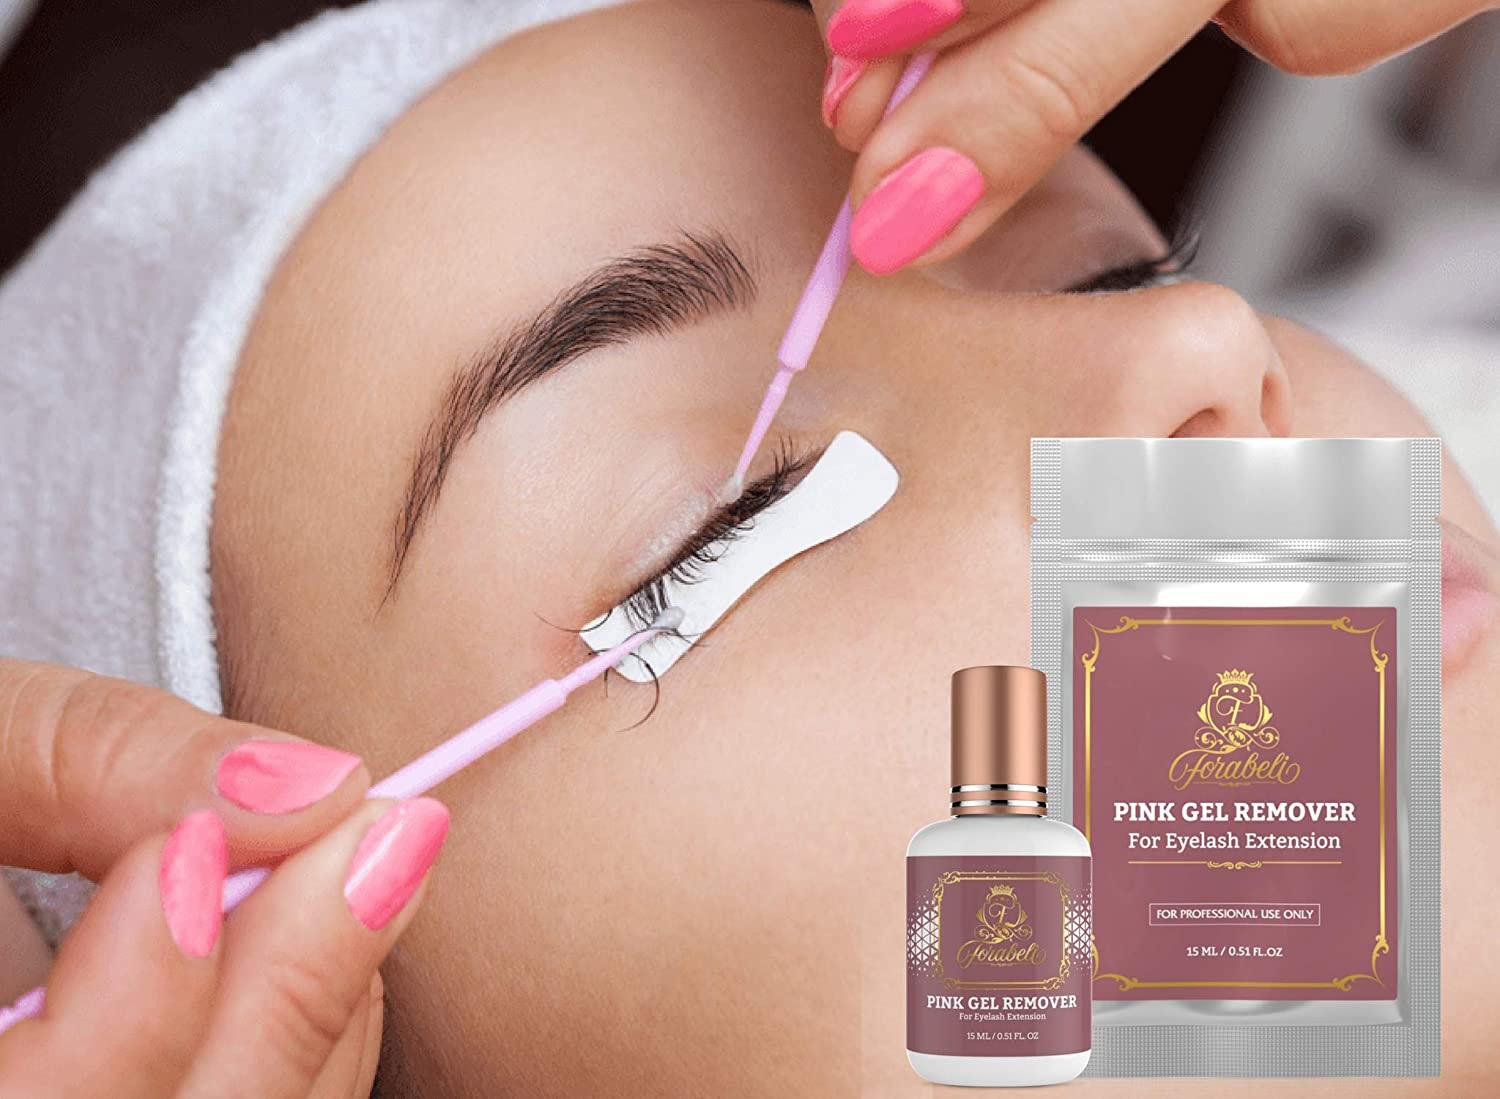 c83691b2d02 Amazon.com : PINK GEL REMOVER for Eyelash Extension Glue 15 ml Forabeli l  Fast Adhesive Dissolution time 60 seconds | Professional Individual Lash  Removing ...